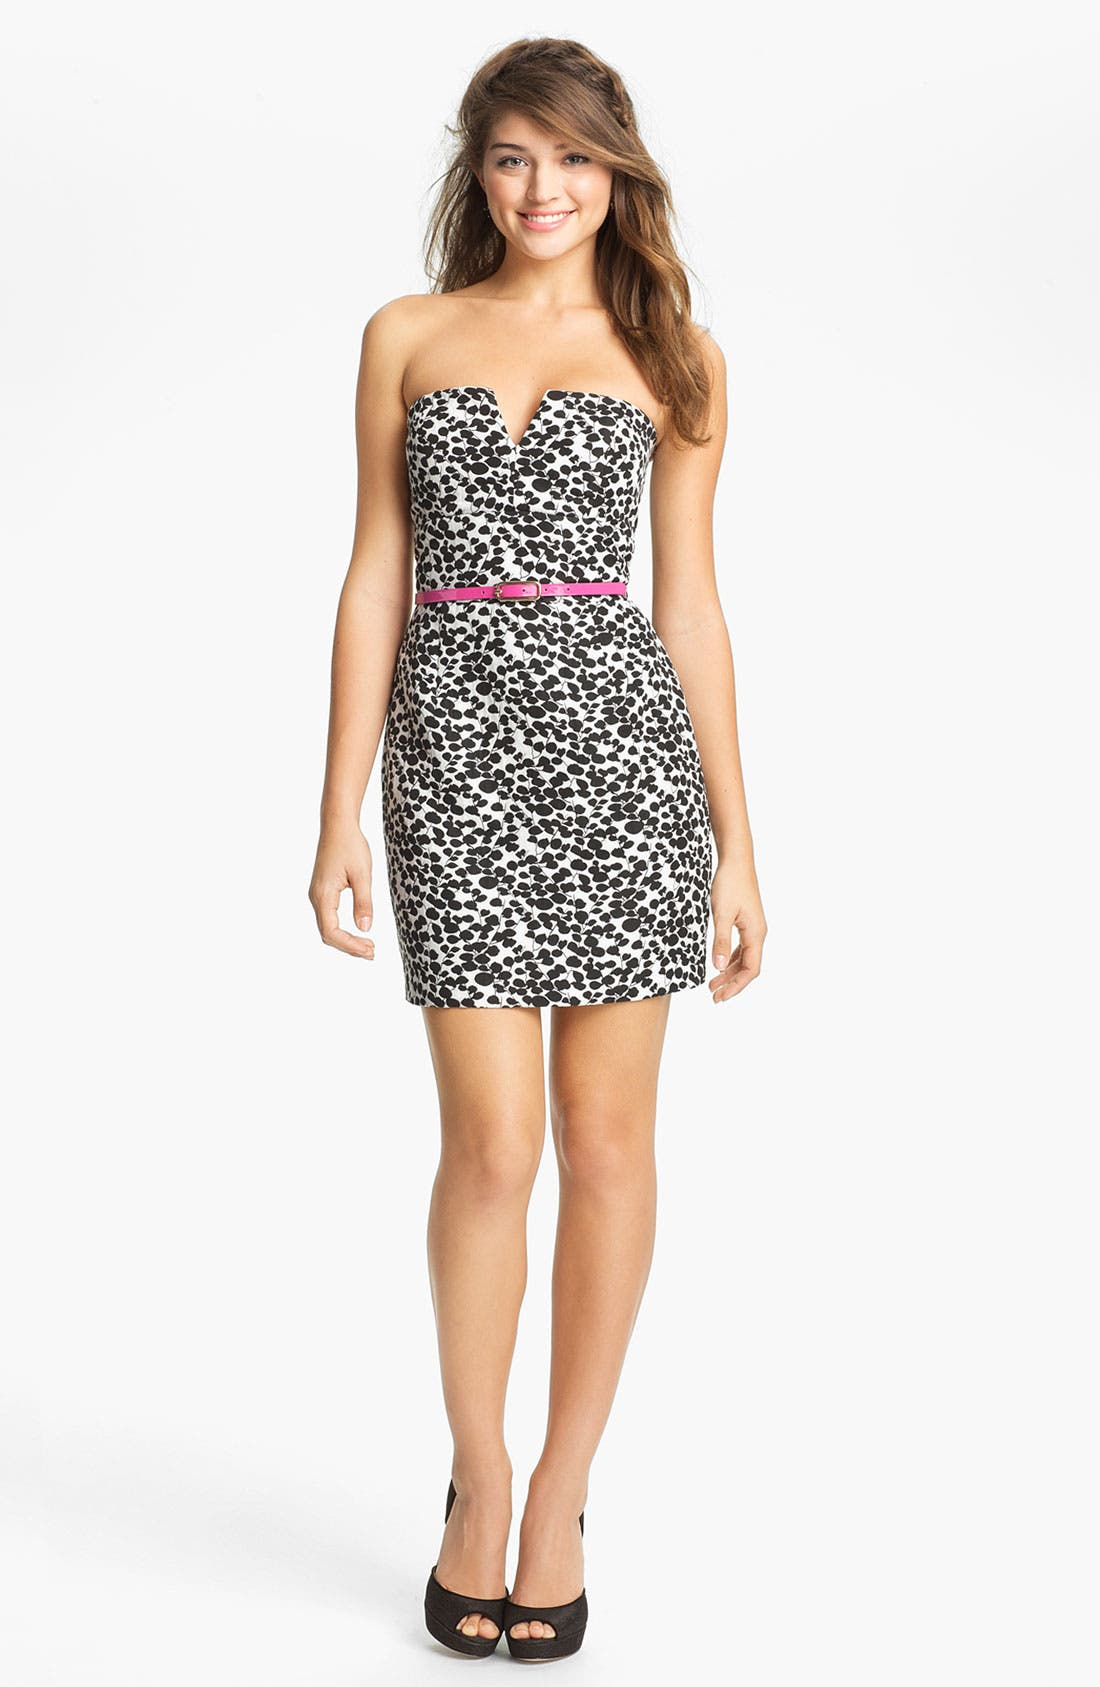 Alternate Image 1 Selected - Max & Cleo Print Strapless Sheath Dress